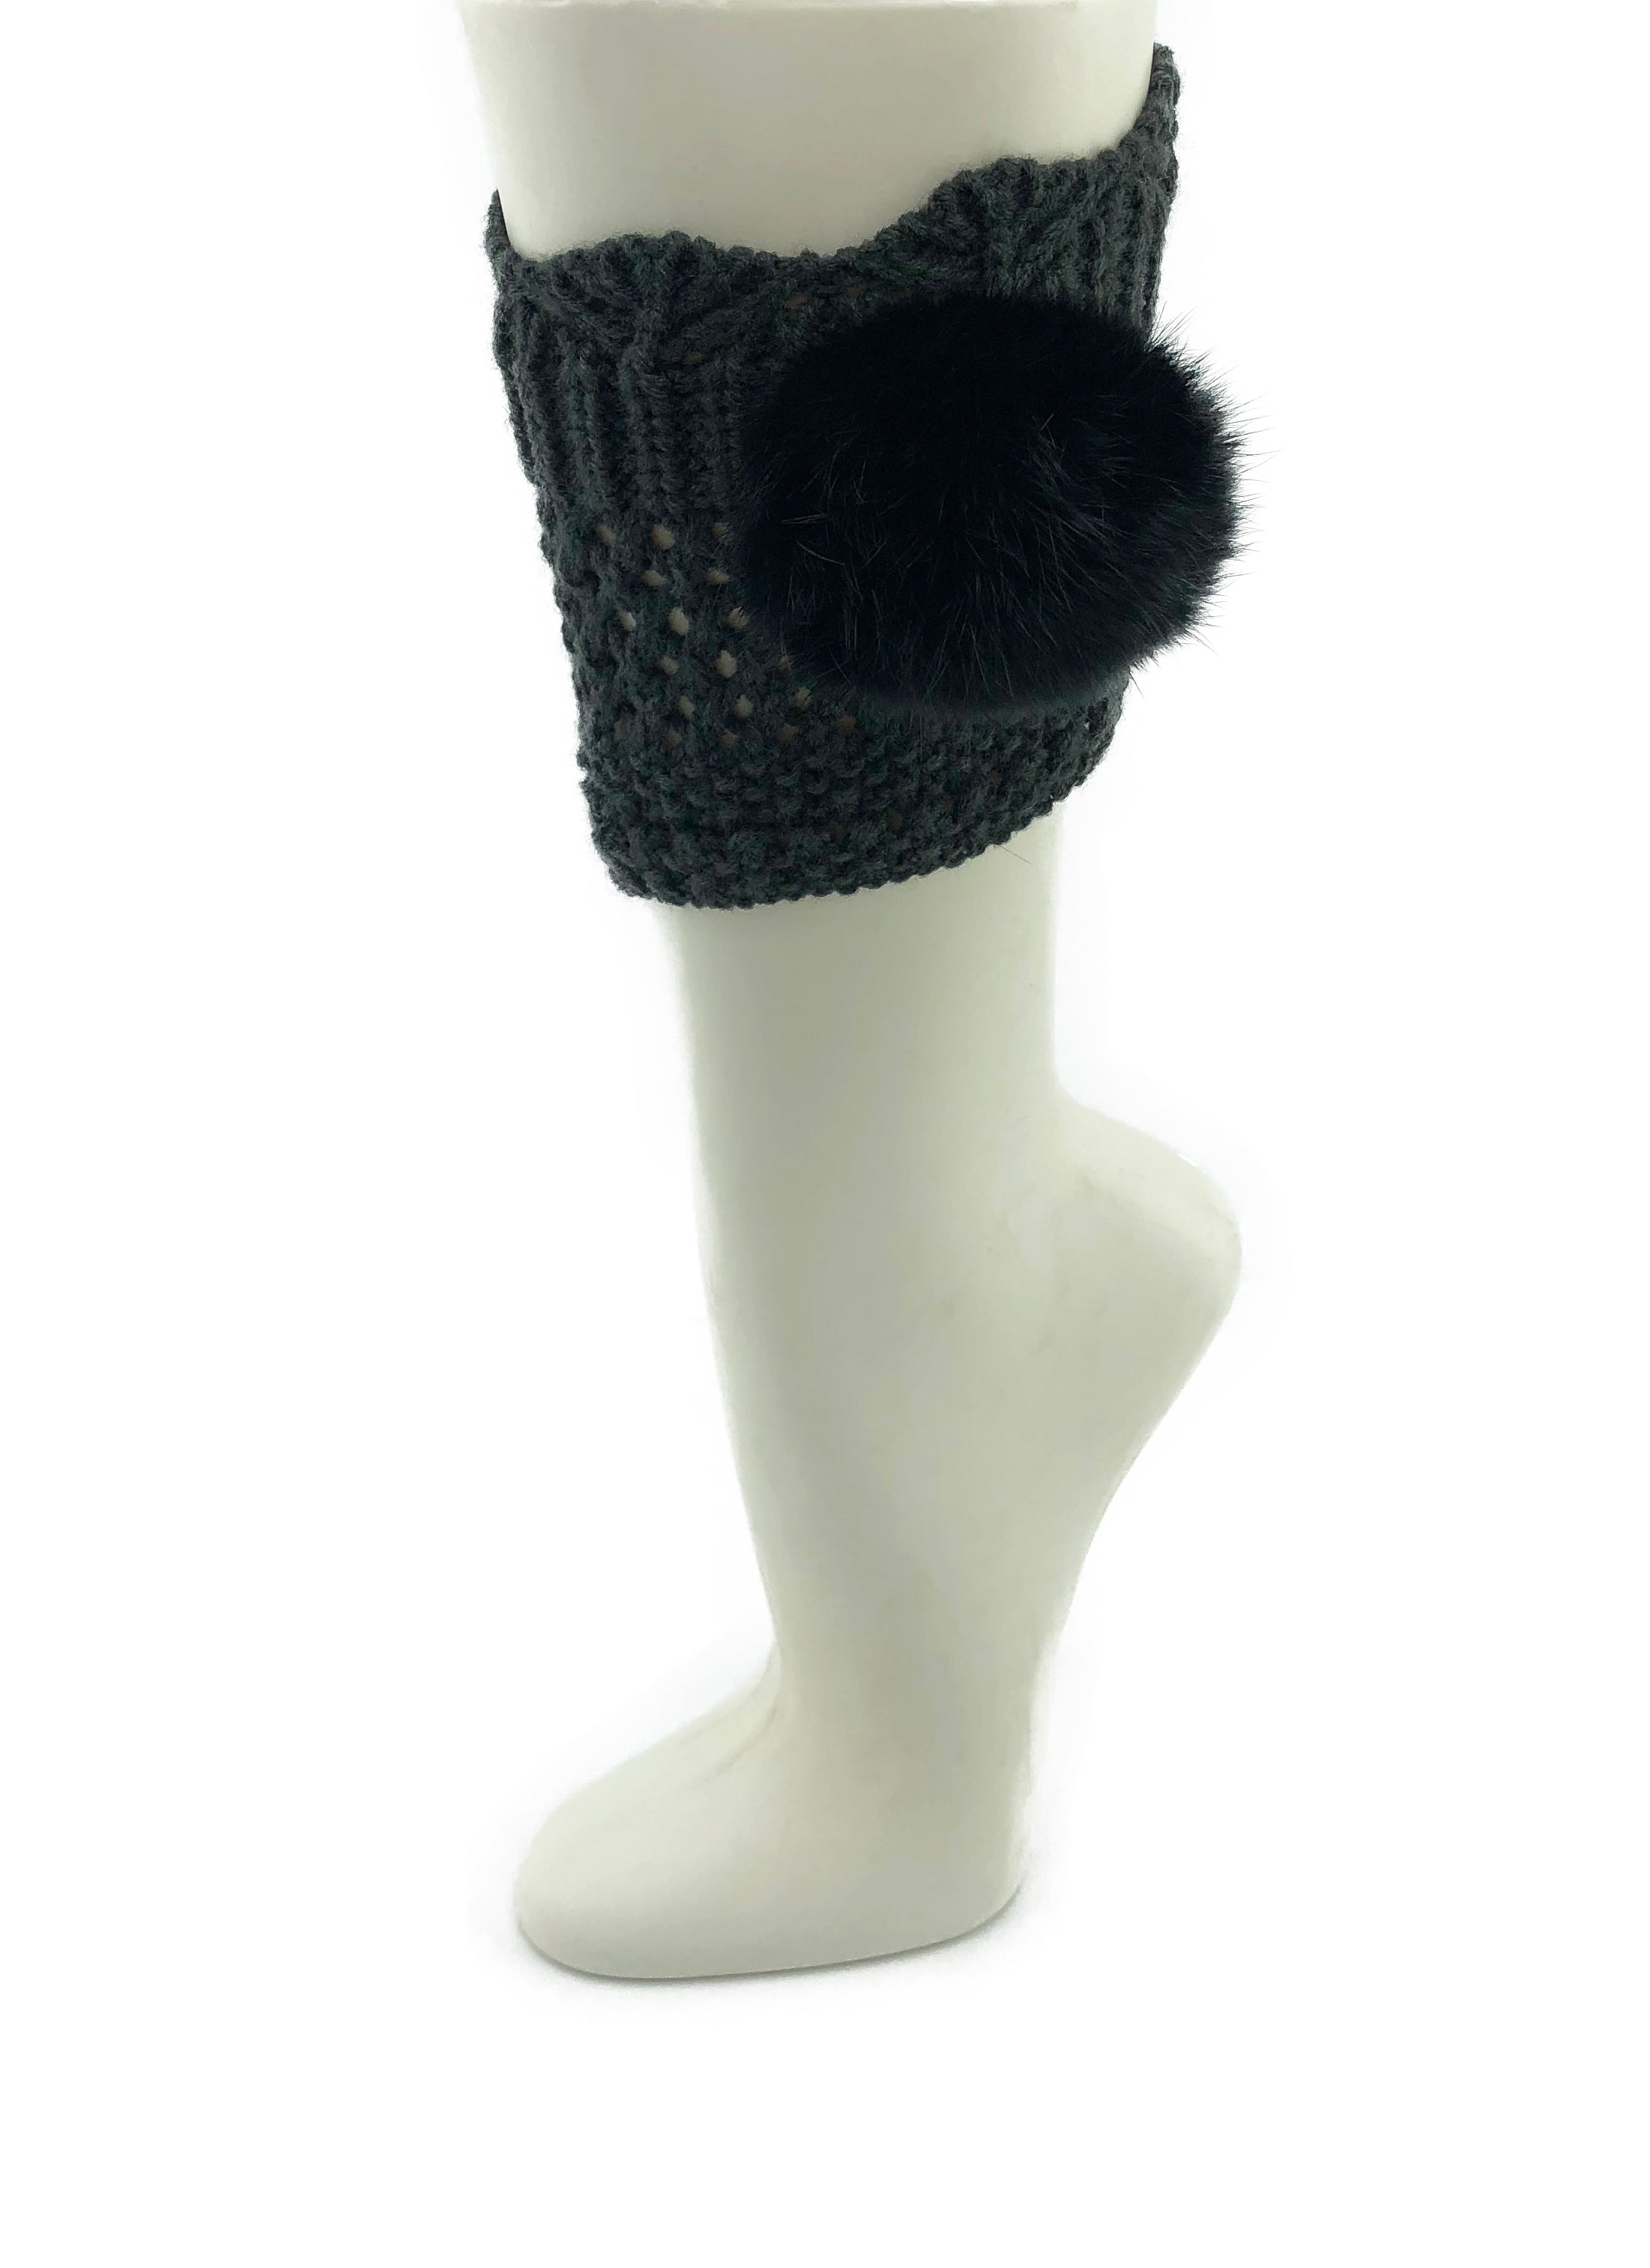 Dark Grey Leg Warmer/Boot Cover with Rex Rabbit Pom - paulamarie